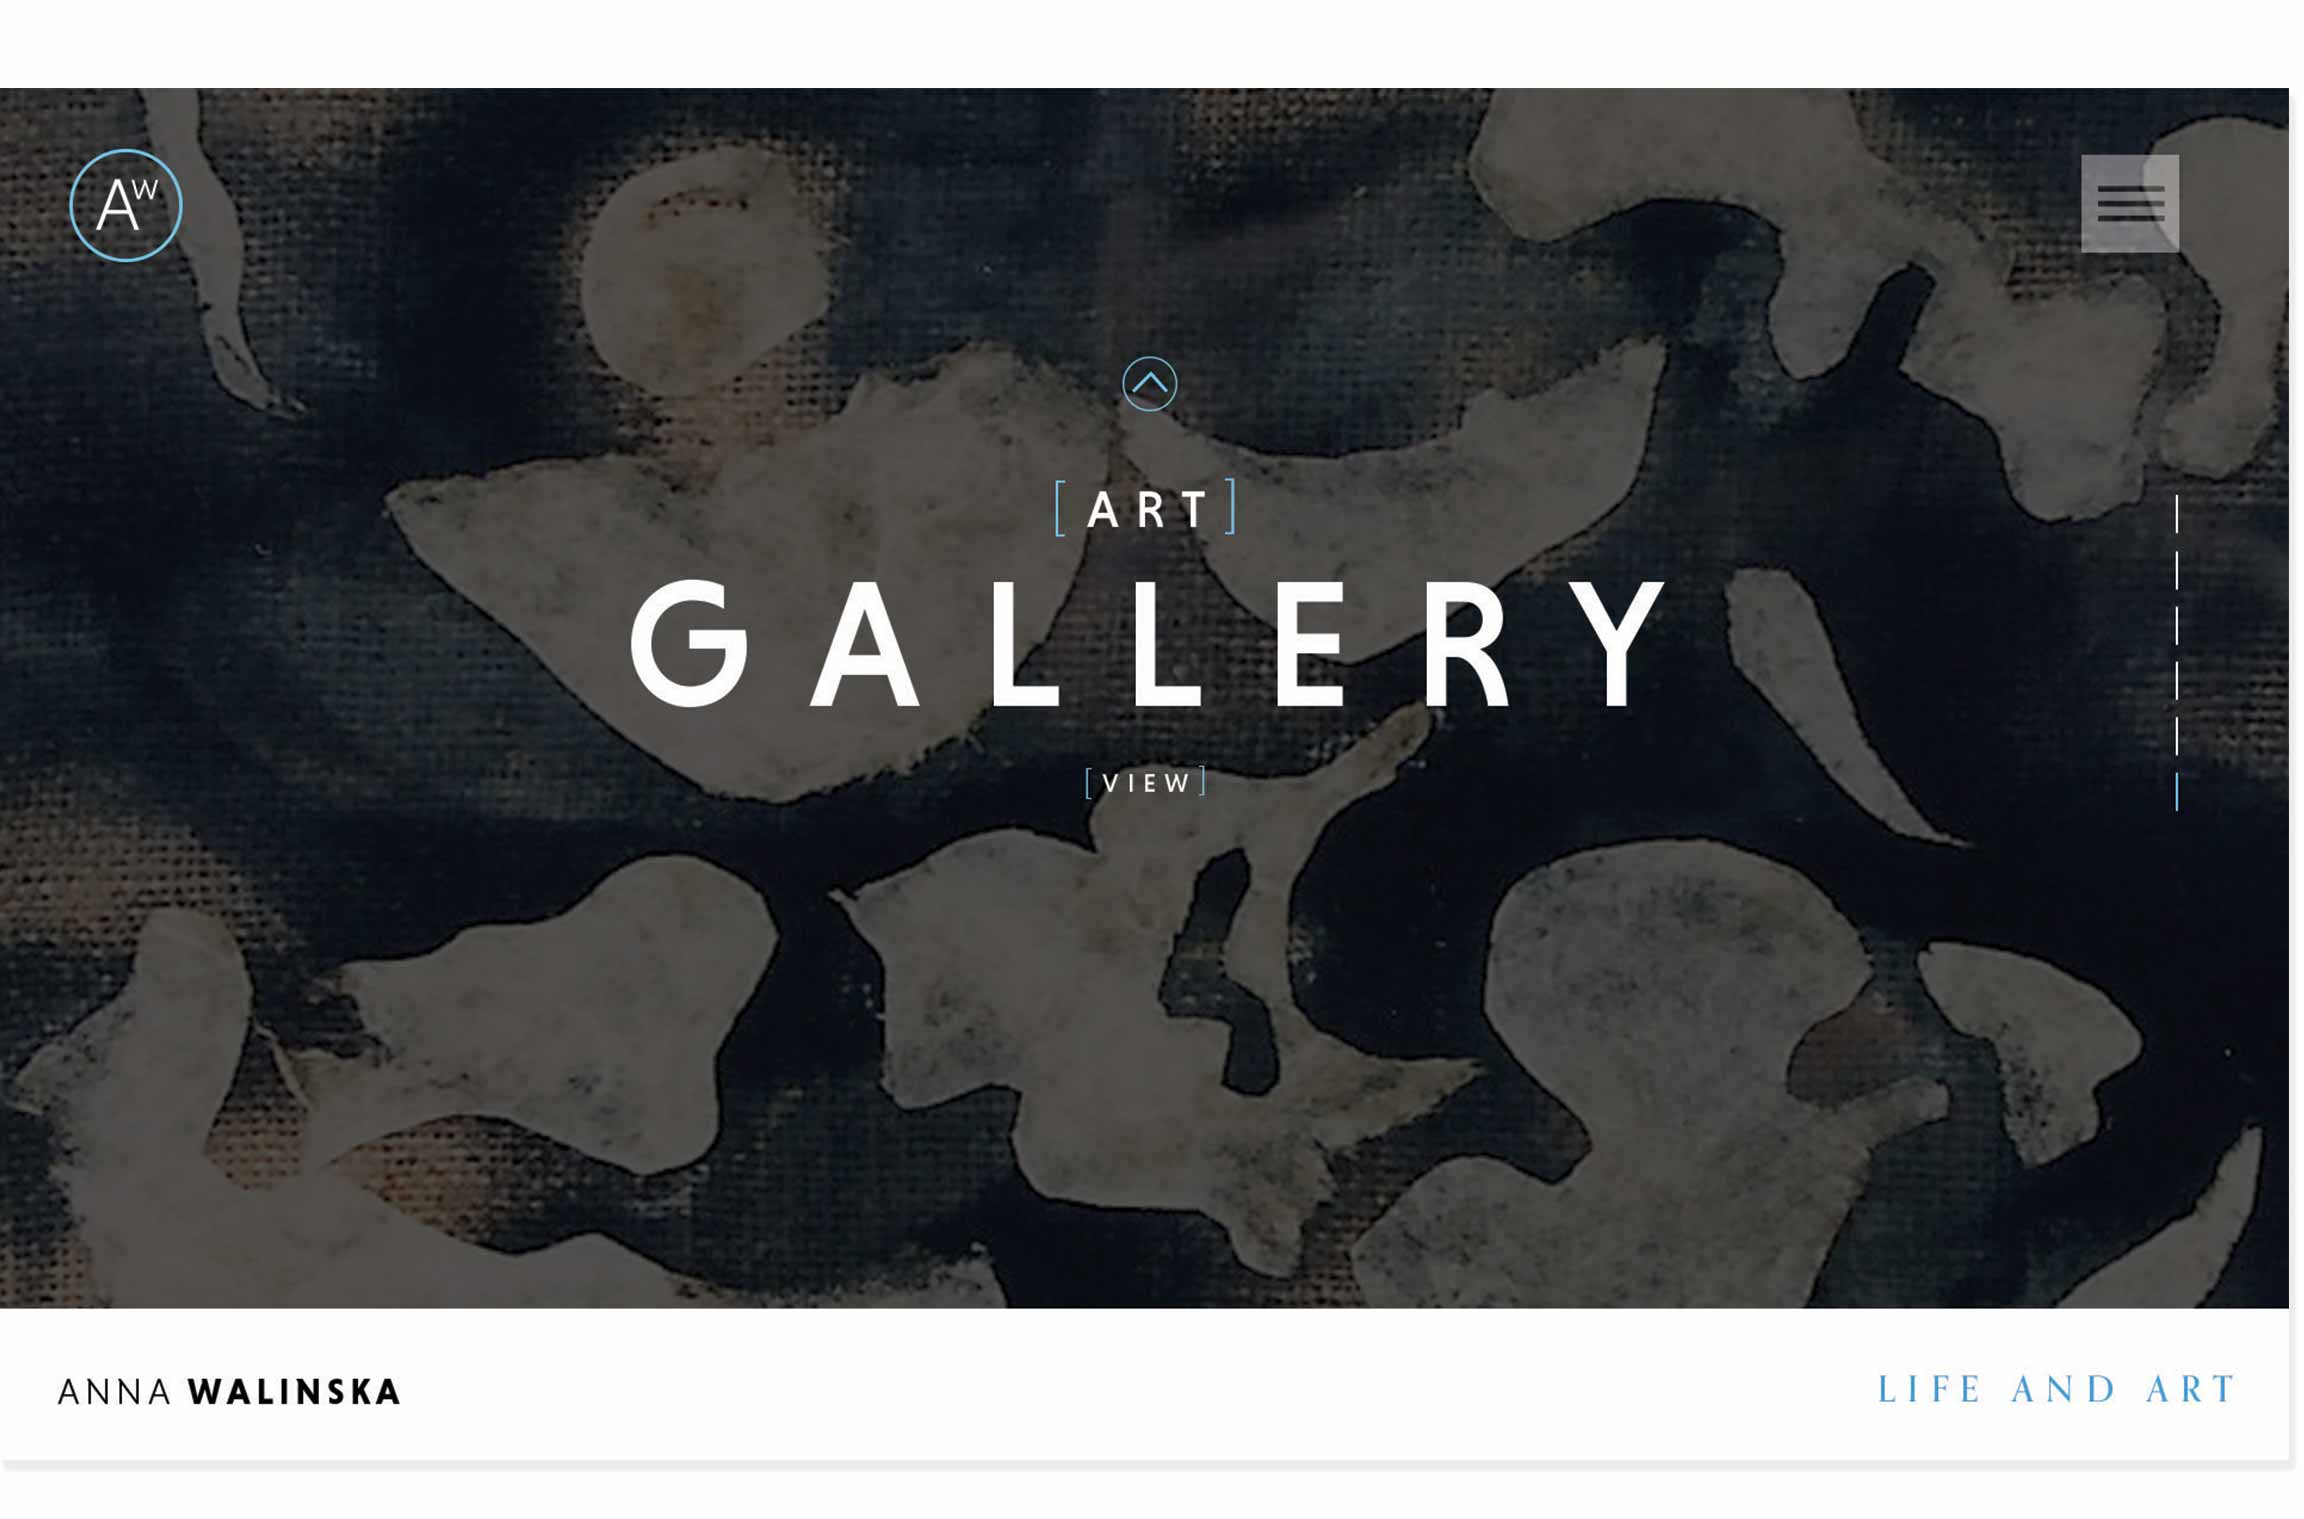 Anna Walinska website design Gallery landing page